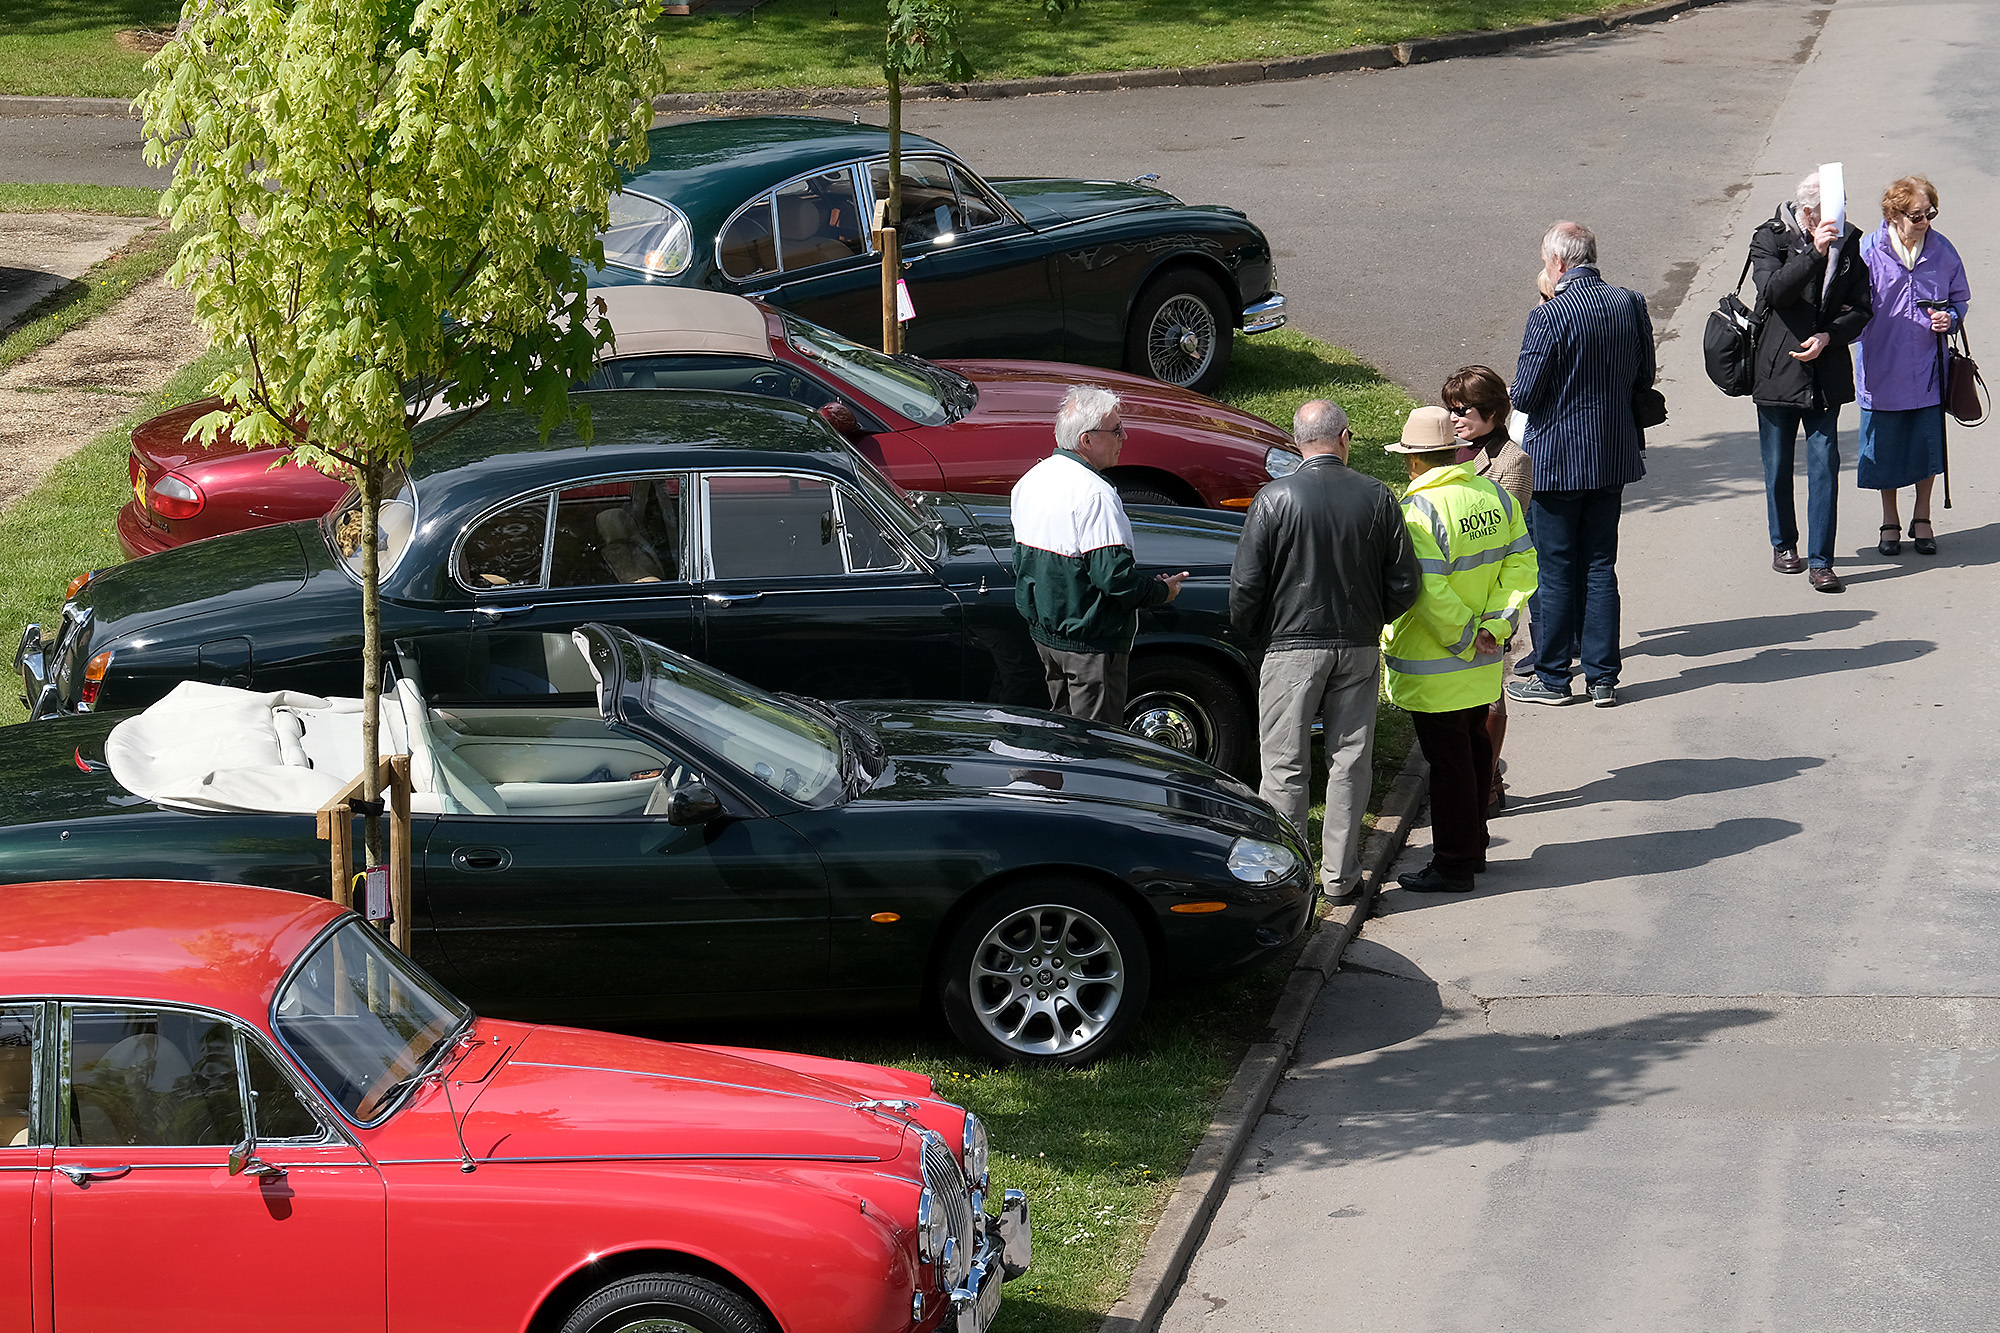 In pictures: The Jaguar Enthusiasts Club at Bicester Heritage